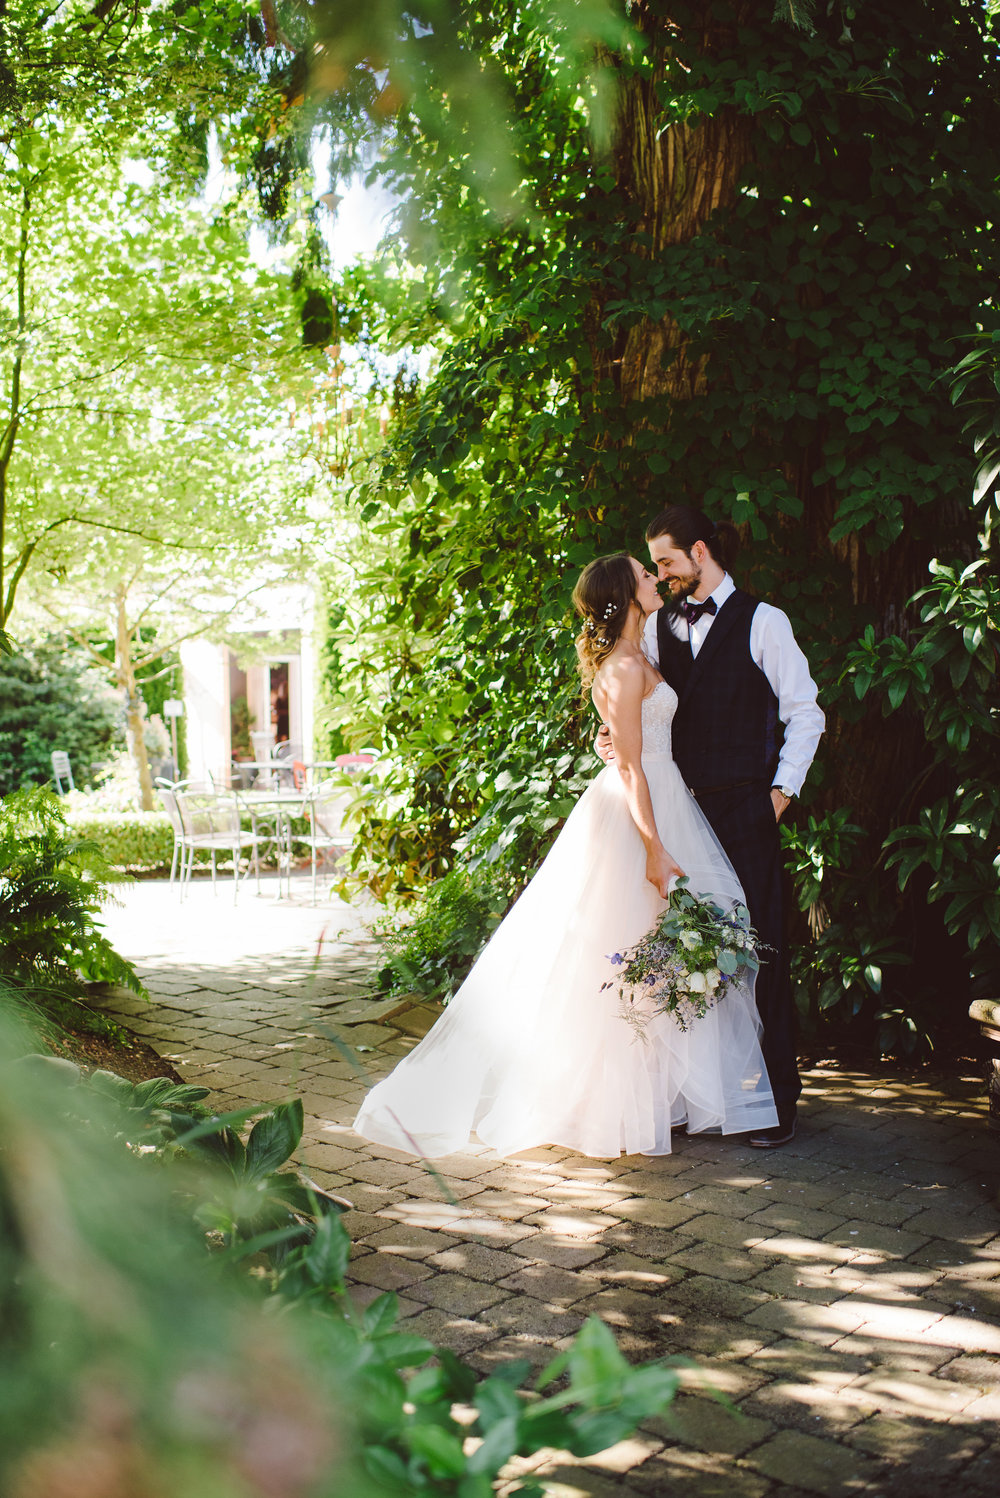 A Bride and grooms first look in our courtyard.